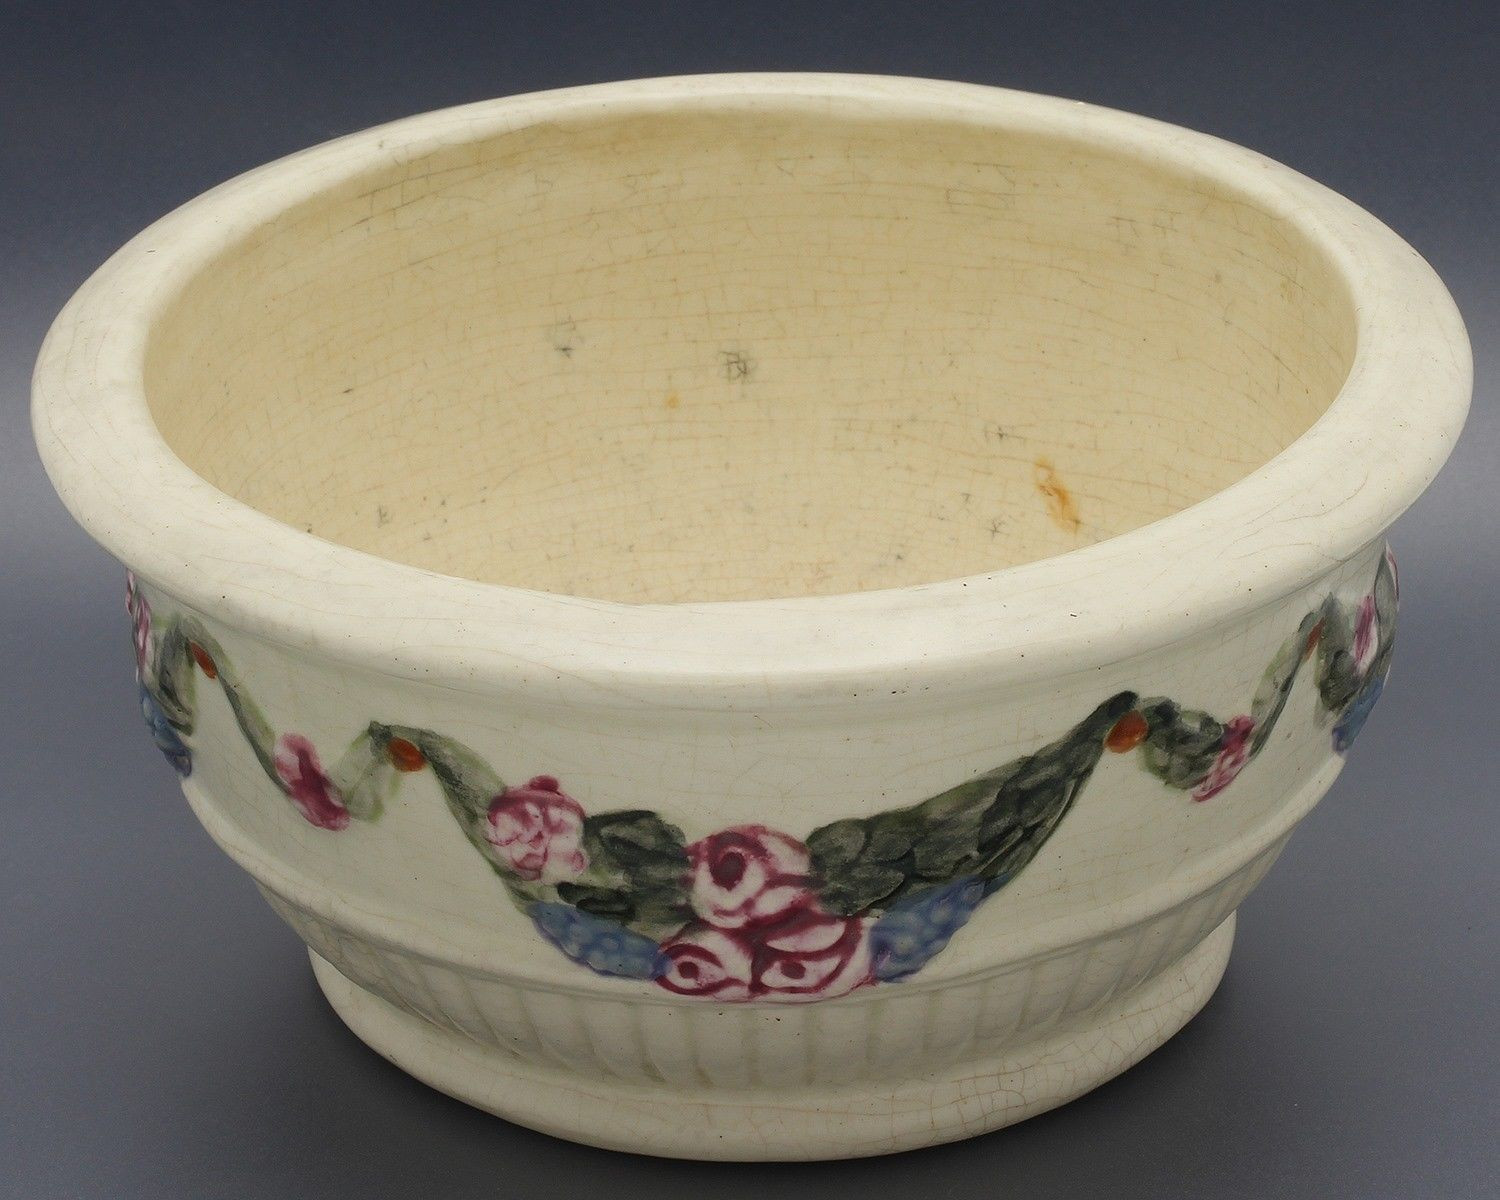 louwelsa weller vase of antique weller american art pottery creamware roma bowl planter rose within 1 of 3only 1 available